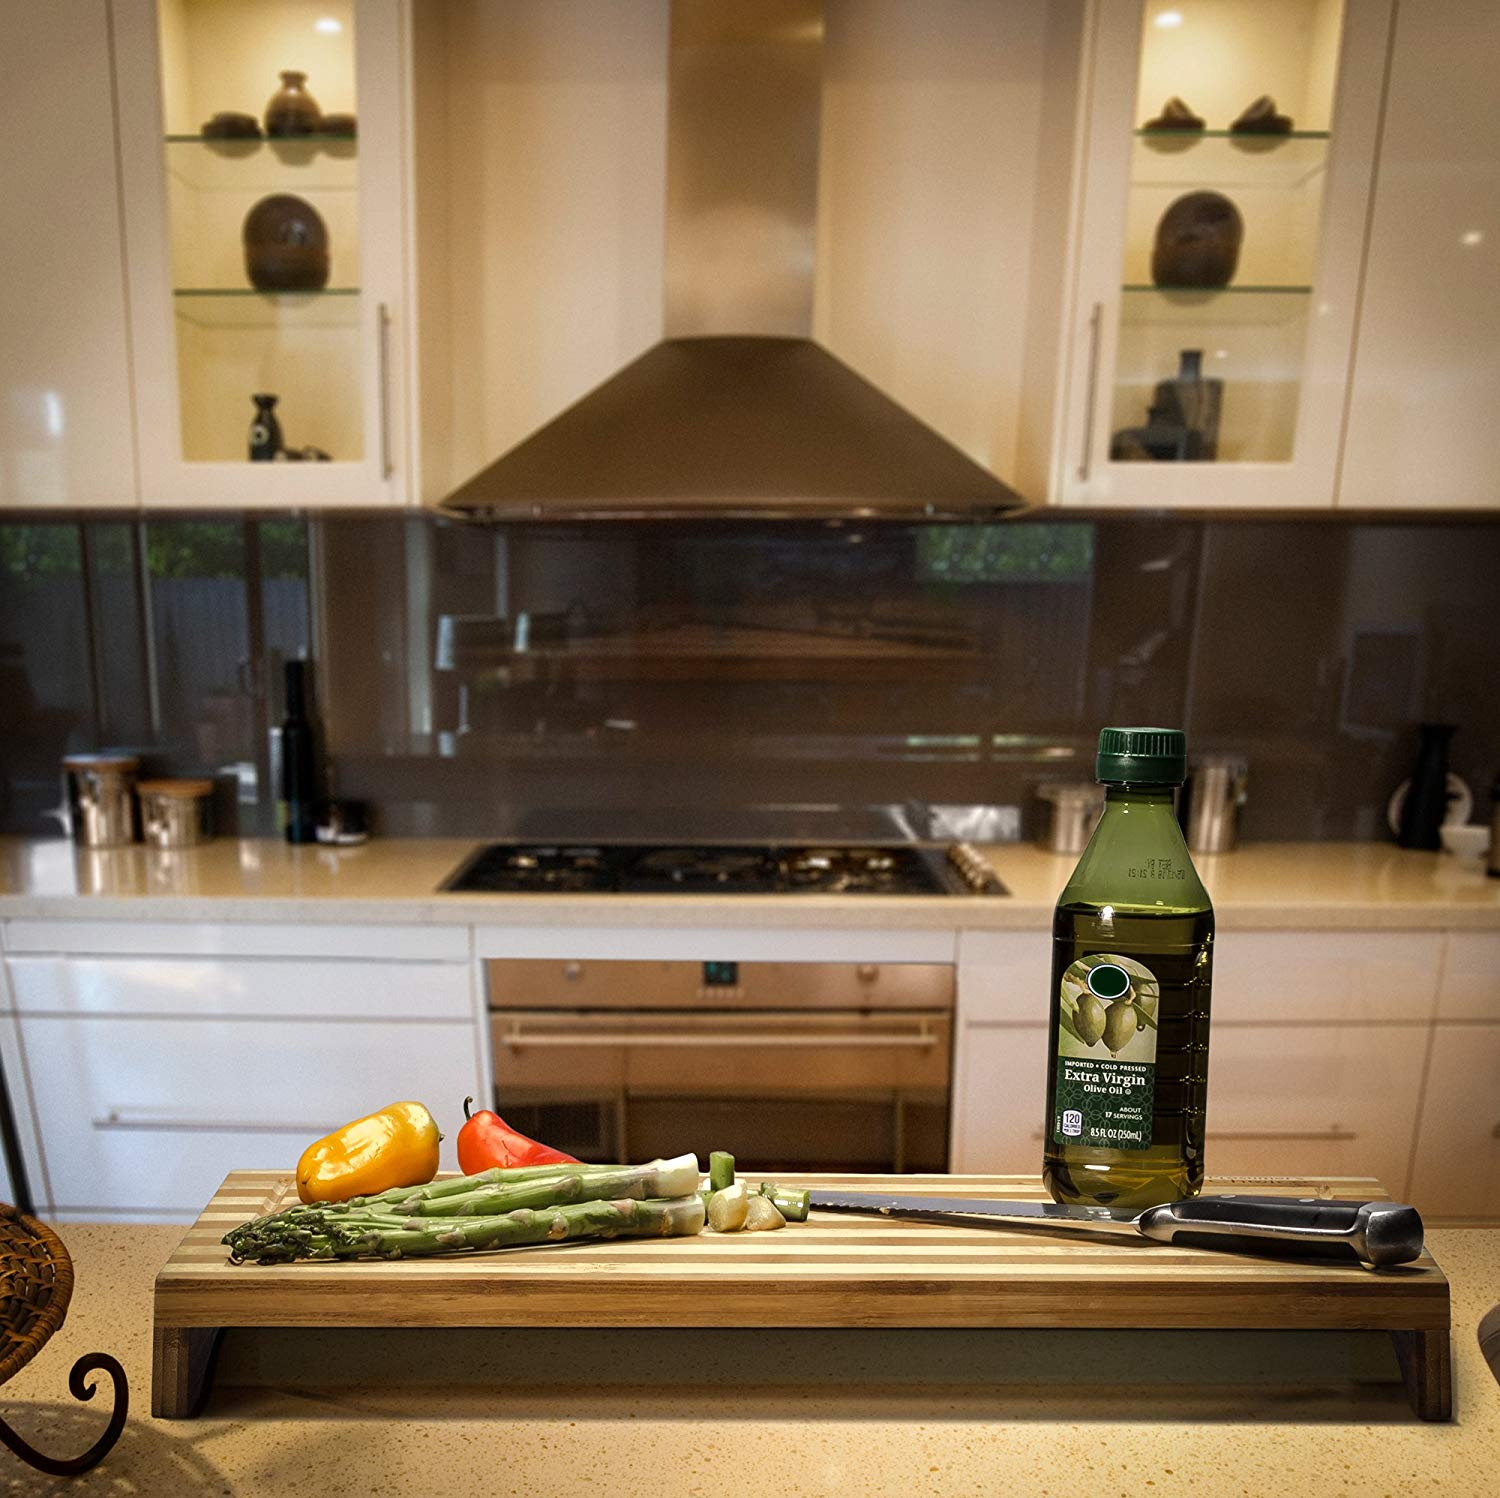 Prosumer's Choice Dual-purpose Bamboo Stovetop cover workspace